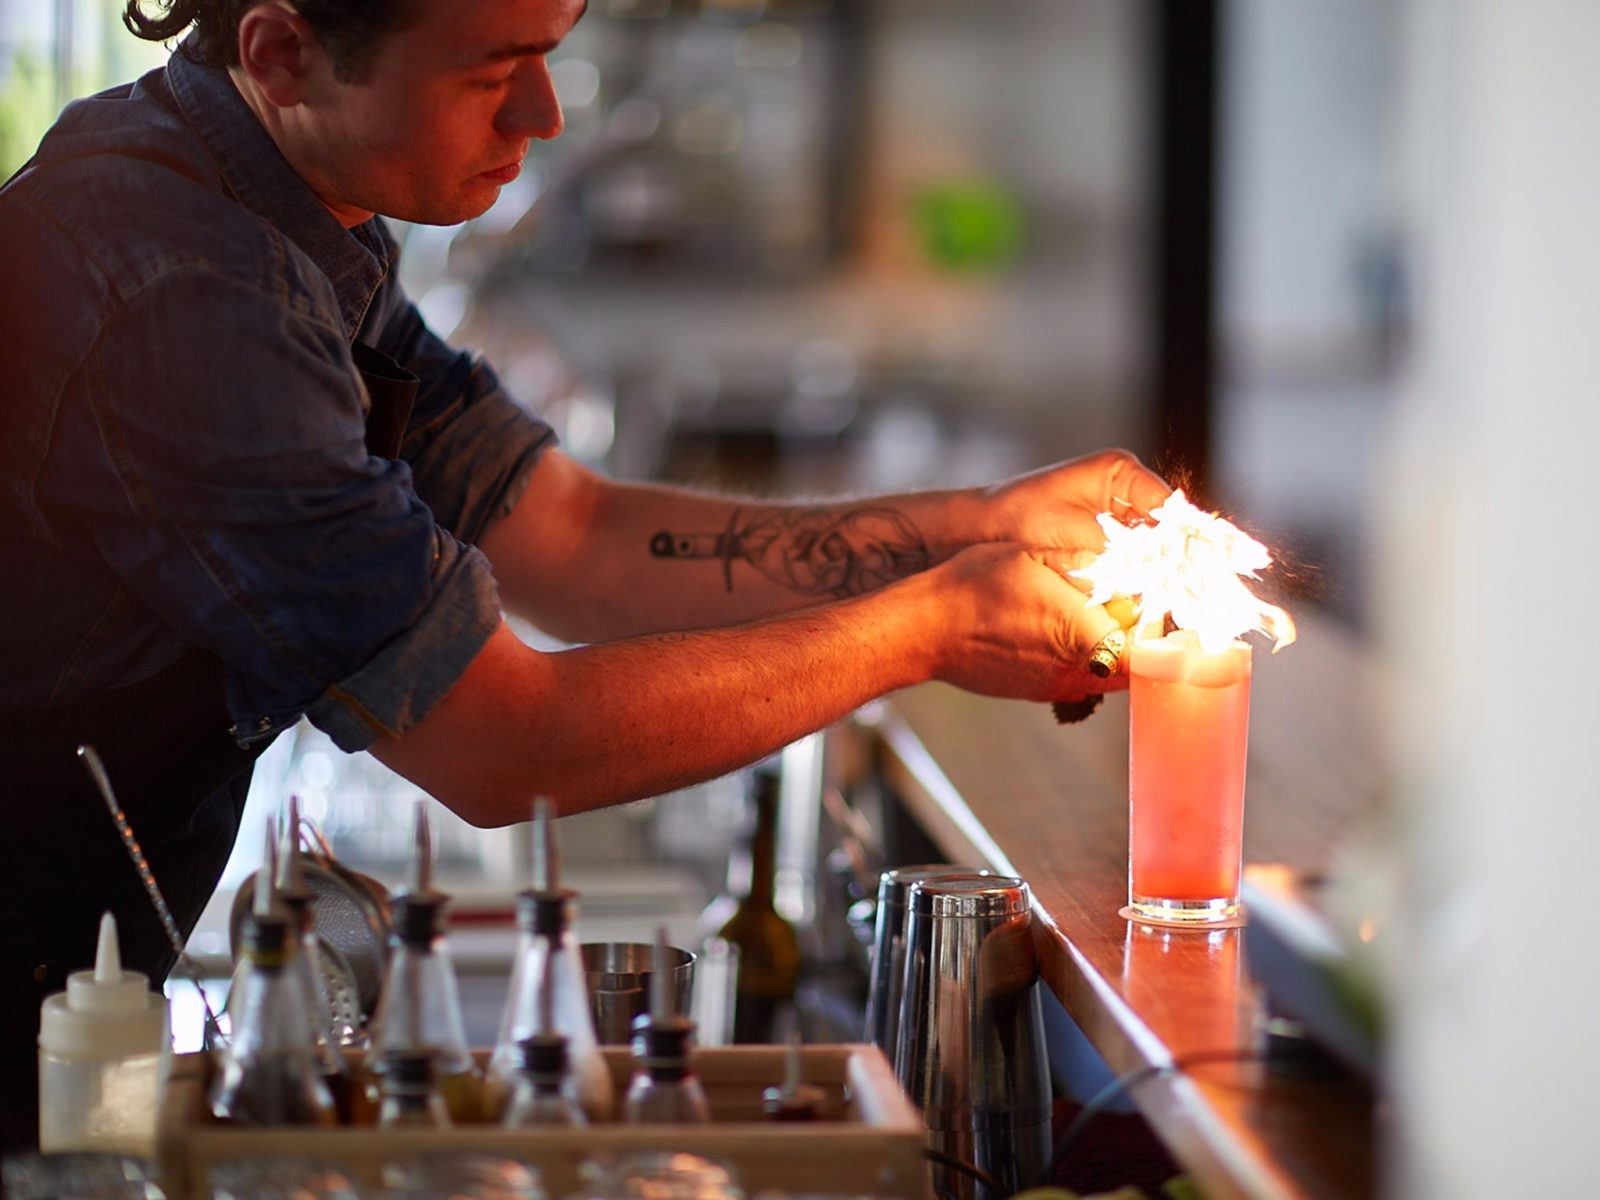 Barman lighting a cocktail on the bar